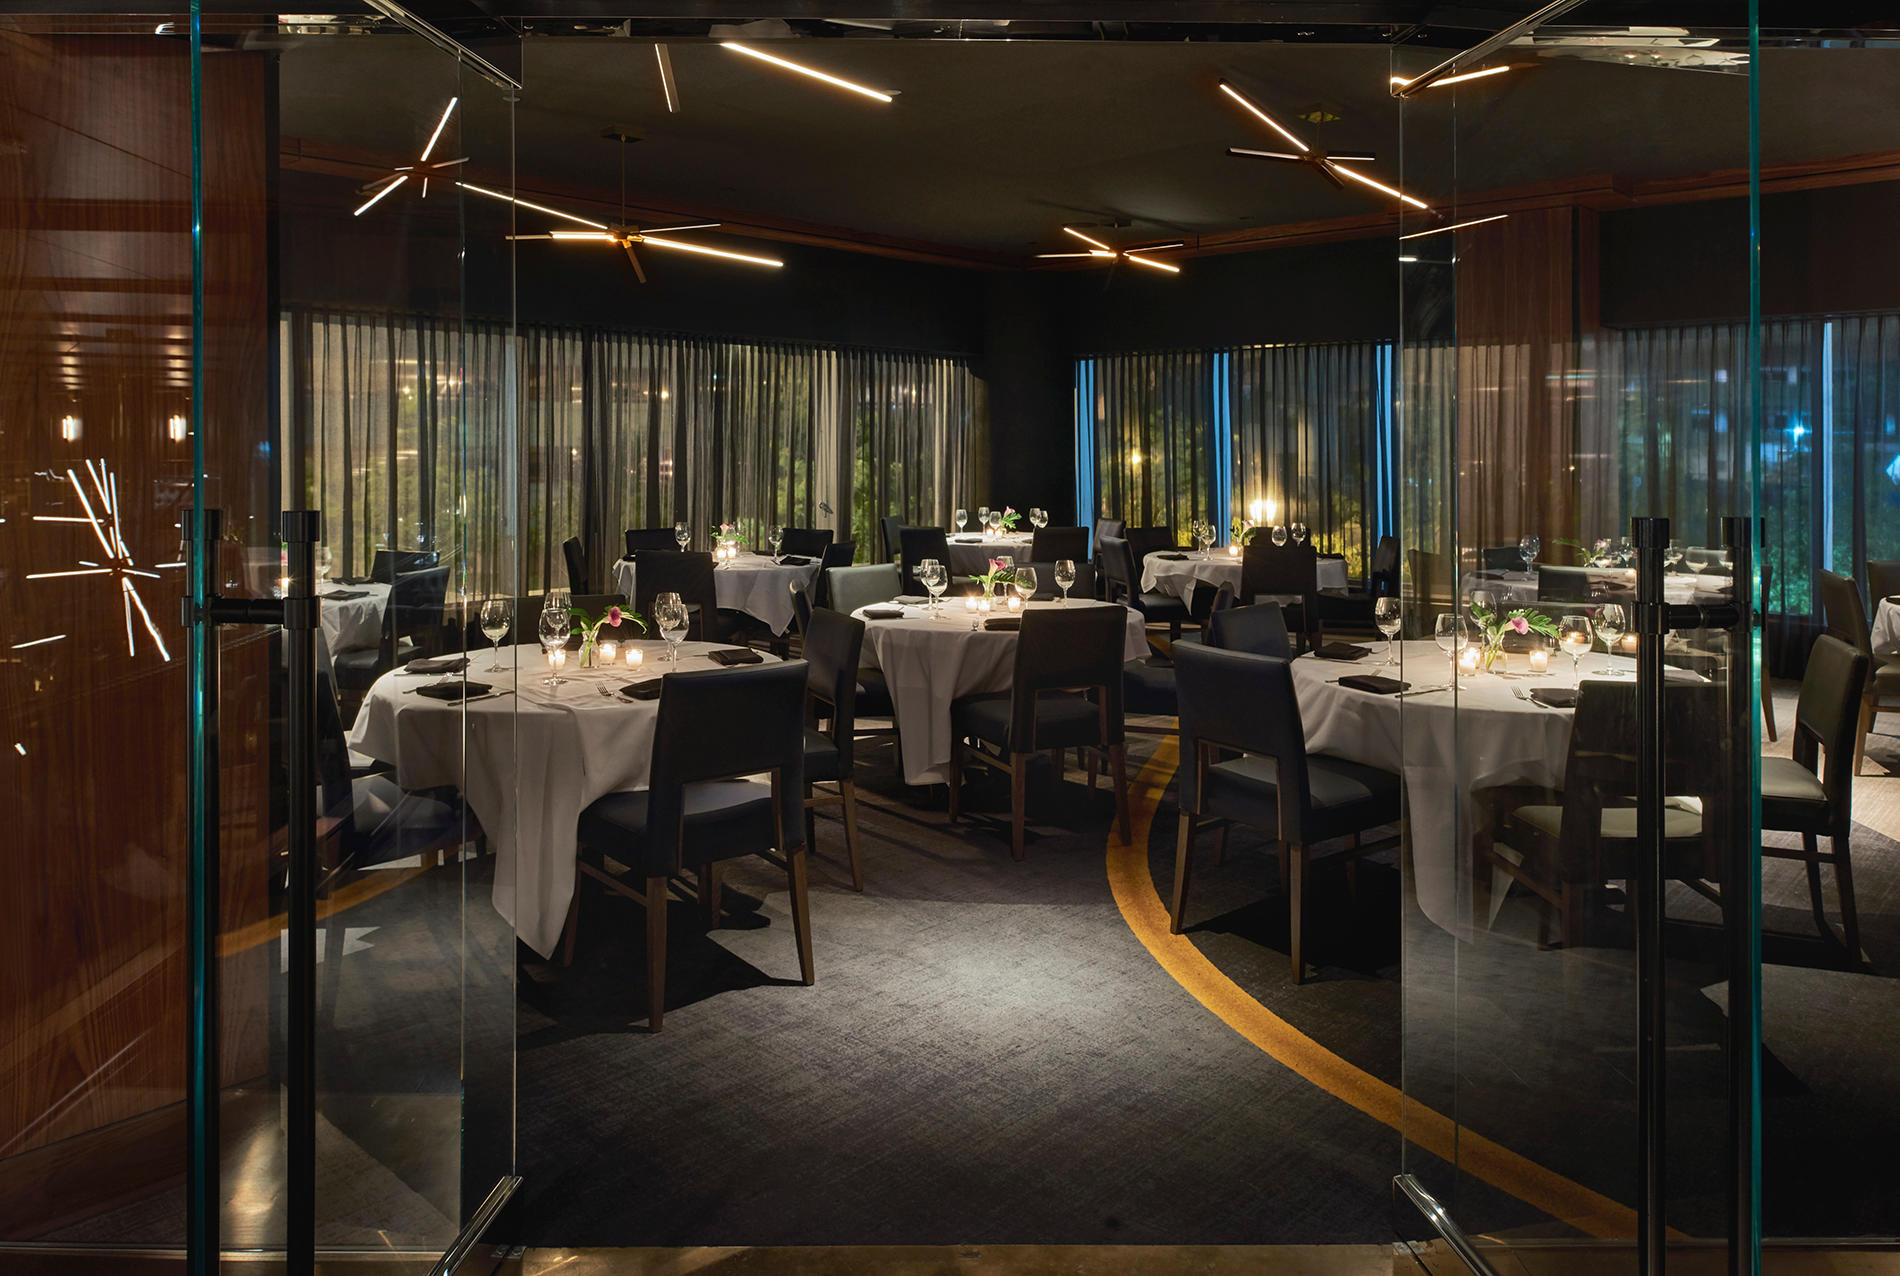 Del Frisco's Double Eagle Steakhouse Dunwoody Eagle Room private dining room